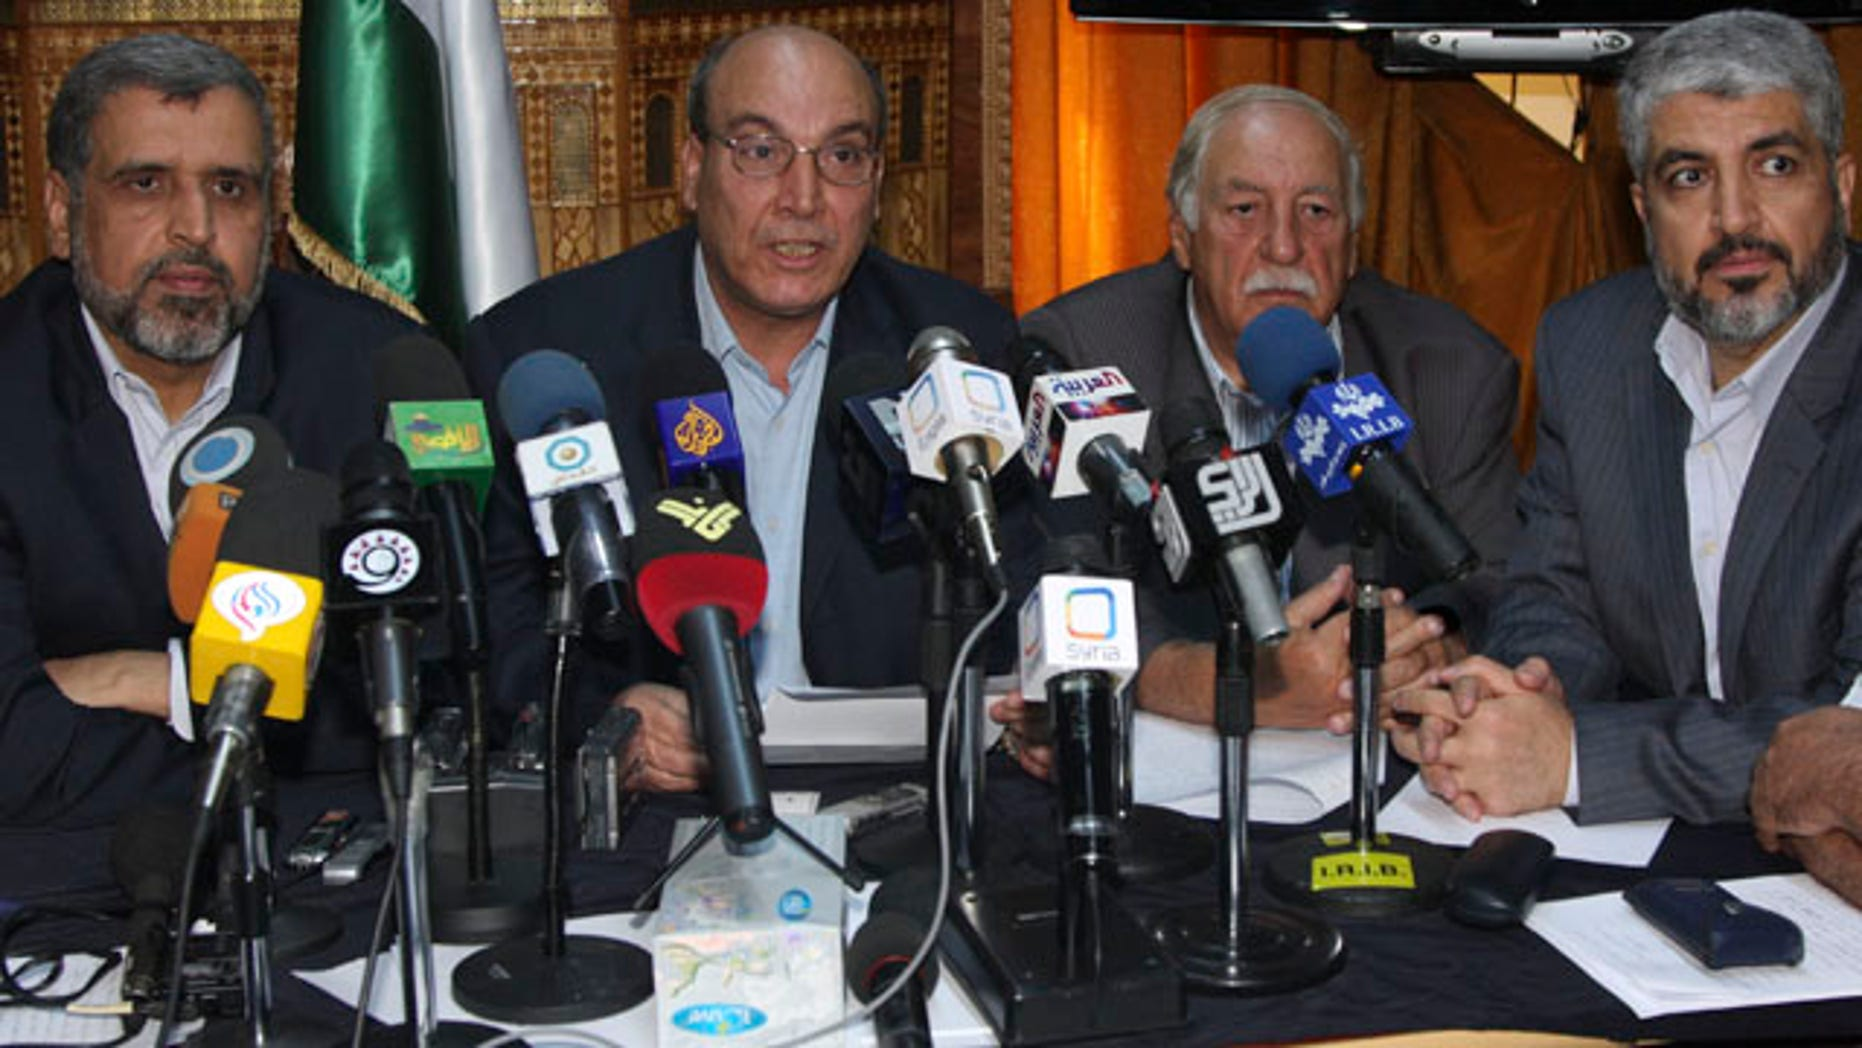 Aug. 15: Eleven Damascus-based opposition Palestinian groups gather in Damascus, Syria, to agree on a united stance towards direct negotiations between Israel and the Palestinian Authority, with from the right, Khaled Mashaal, head of Hamas politburo; Ahmed Jibril, the Popular Front for the Liberation of Palestine General Command;  Maher Taher, the Popular Front for the Liberation of Palestine's representative in Damascus; and Ramadan Shallah, the secretary general of the Islamic Jihad leader.